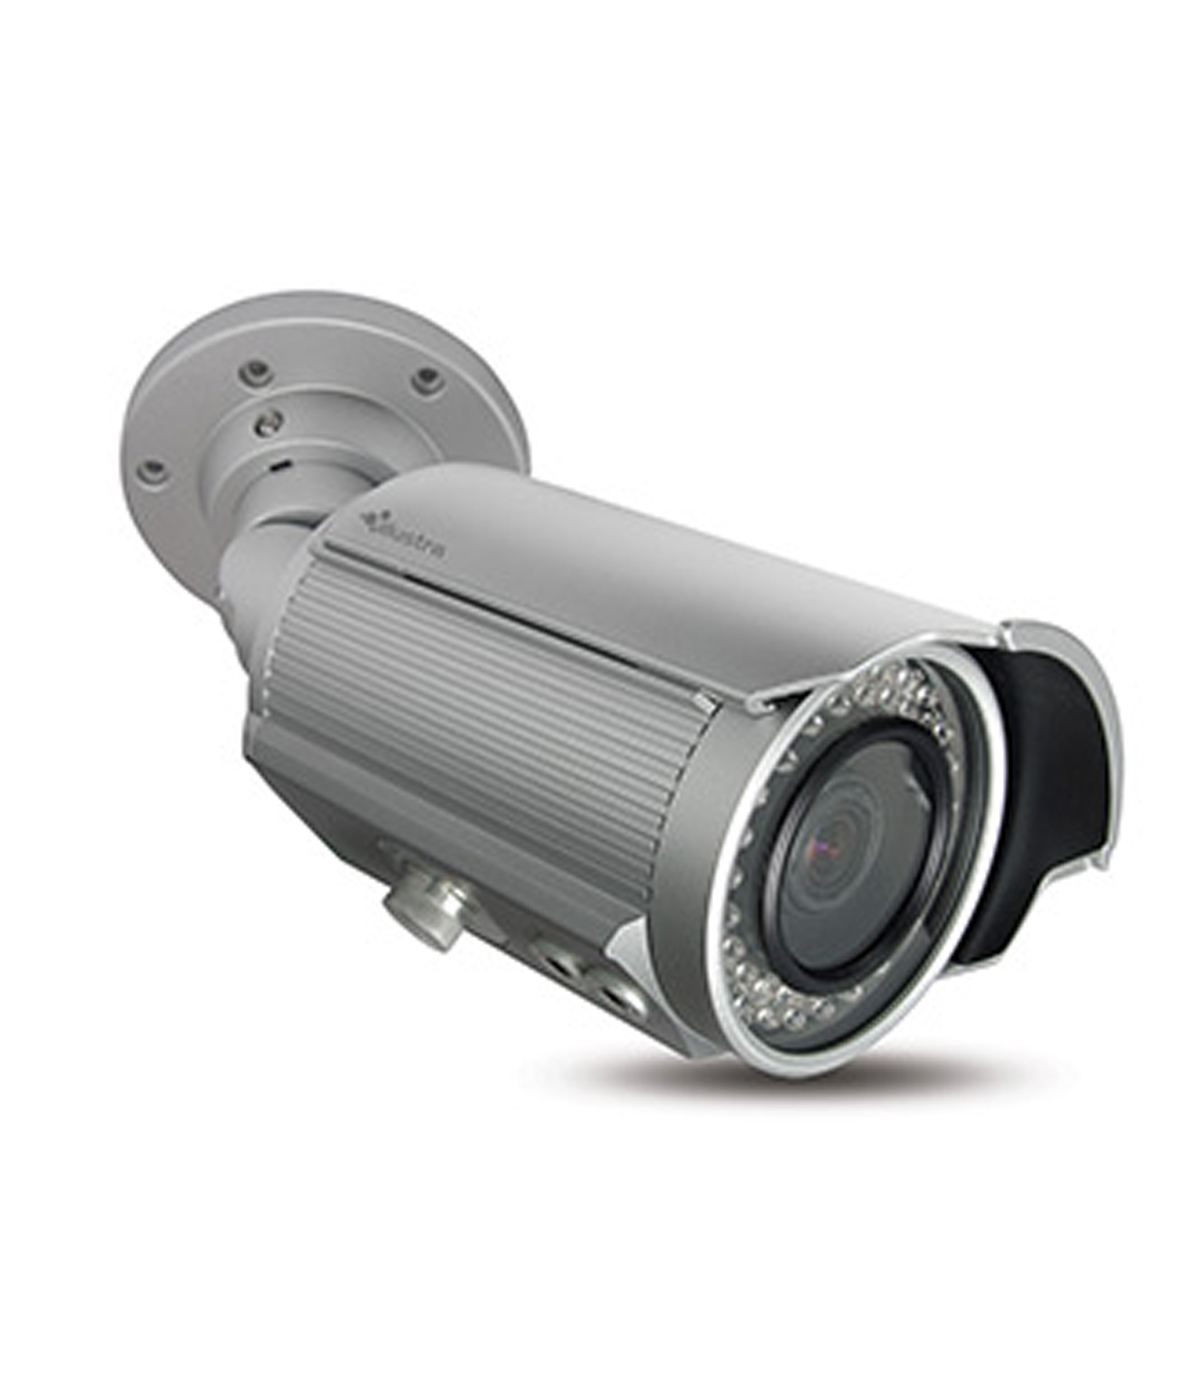 cctv_system_security_system_singapore_product_exacq_vision_illustra_bullet_camera